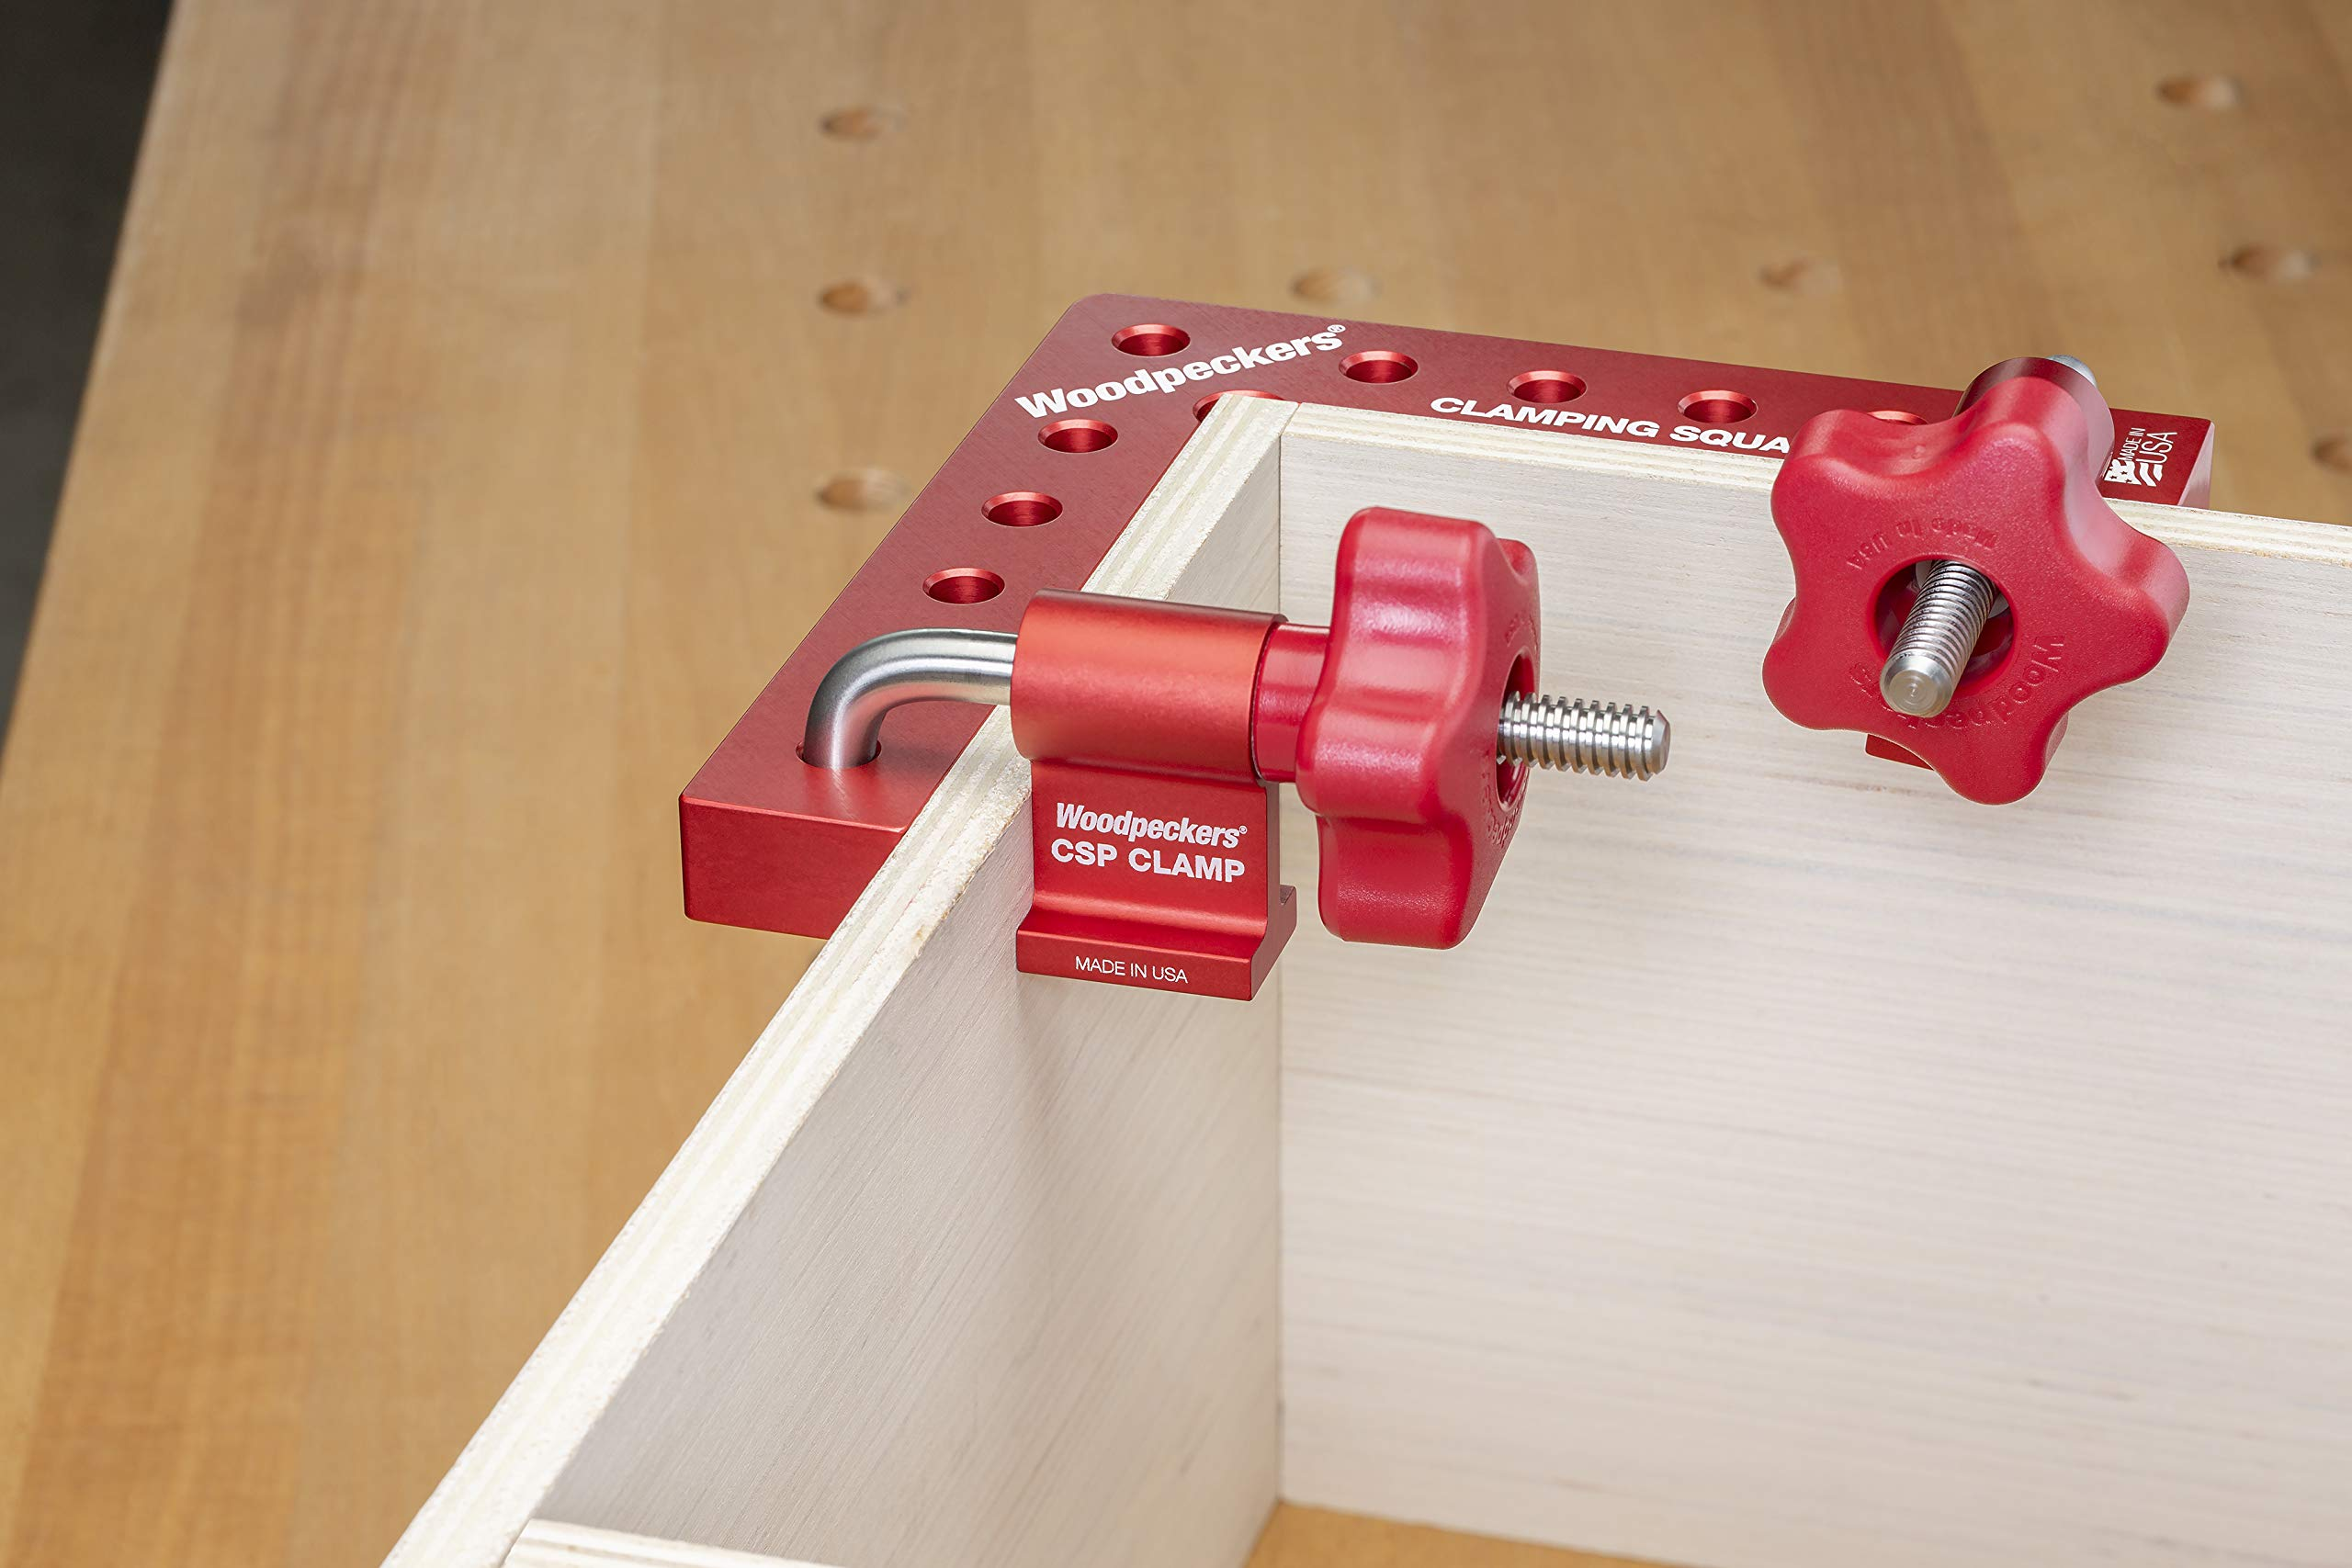 Clamping Square PLUS Clamp - 4 pairs of clamps + 4 Individual Clamping Square Plus by Woodpeckers (Image #2)